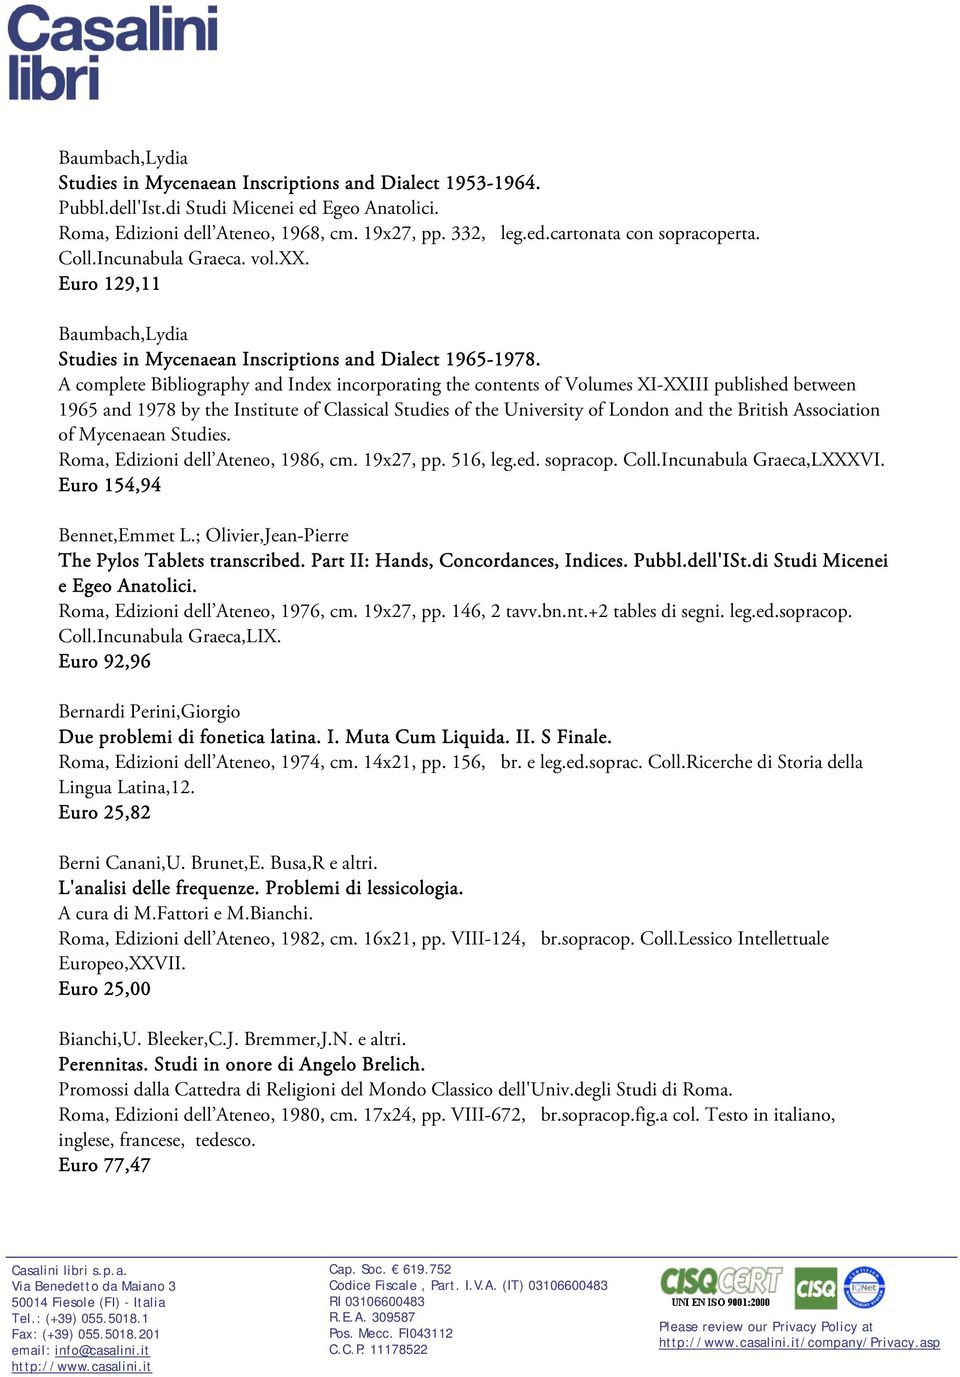 A complete Bibliography and Index incorporating the contents of Volumes XI-XXIII published between 1965 and 1978 by the Institute of Classical Studies of the University of London and the British